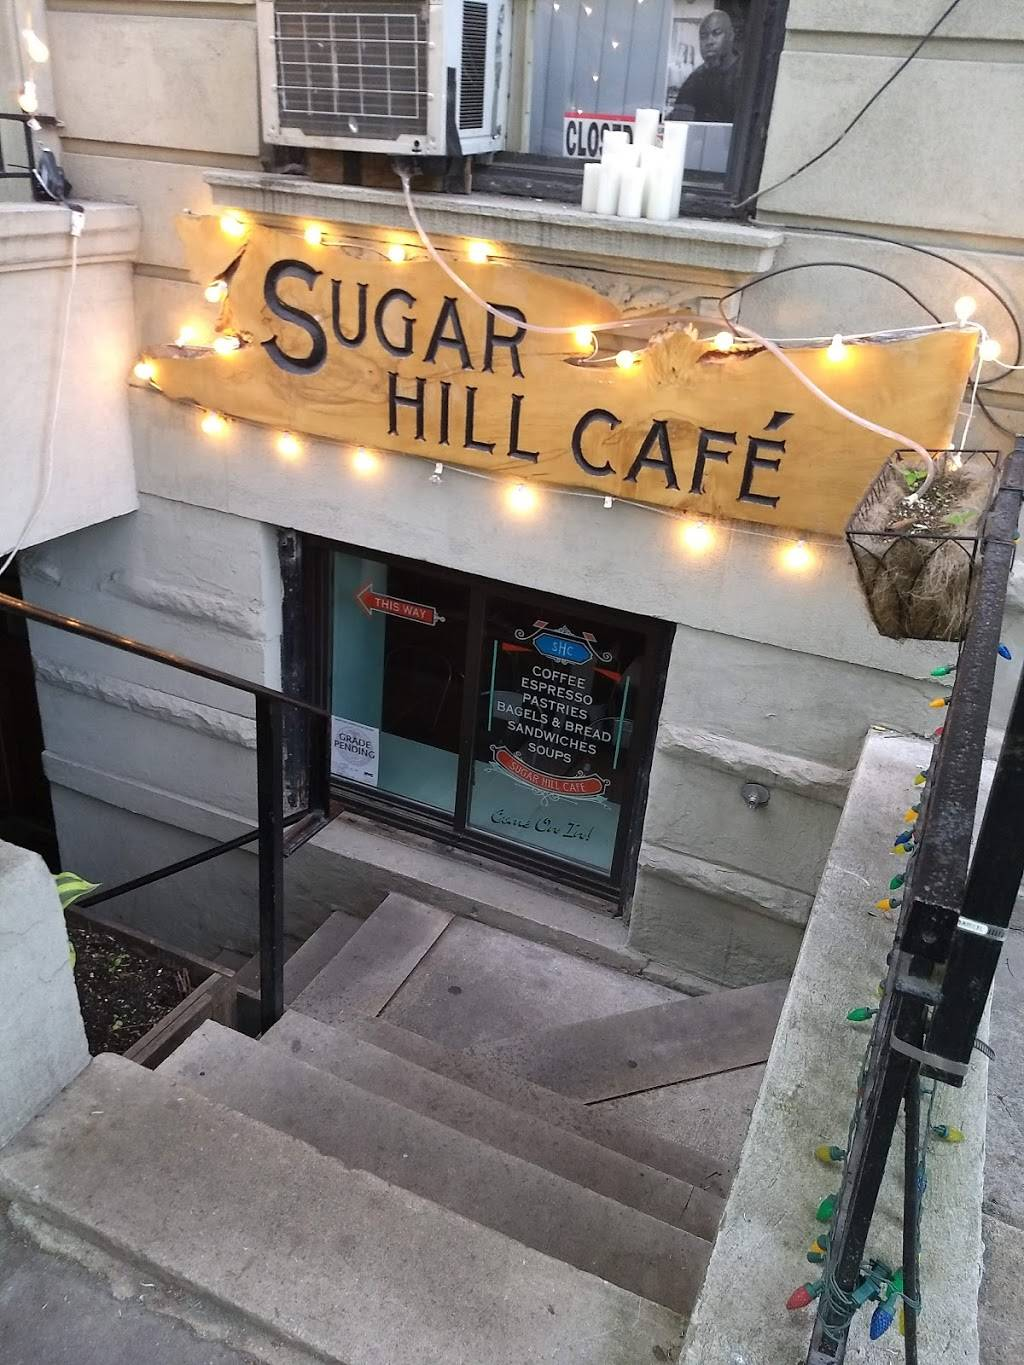 Sugar Hill Cafe | cafe | 410 W 145th St B1, New York, NY 10031, USA | 2122342024 OR +1 212-234-2024